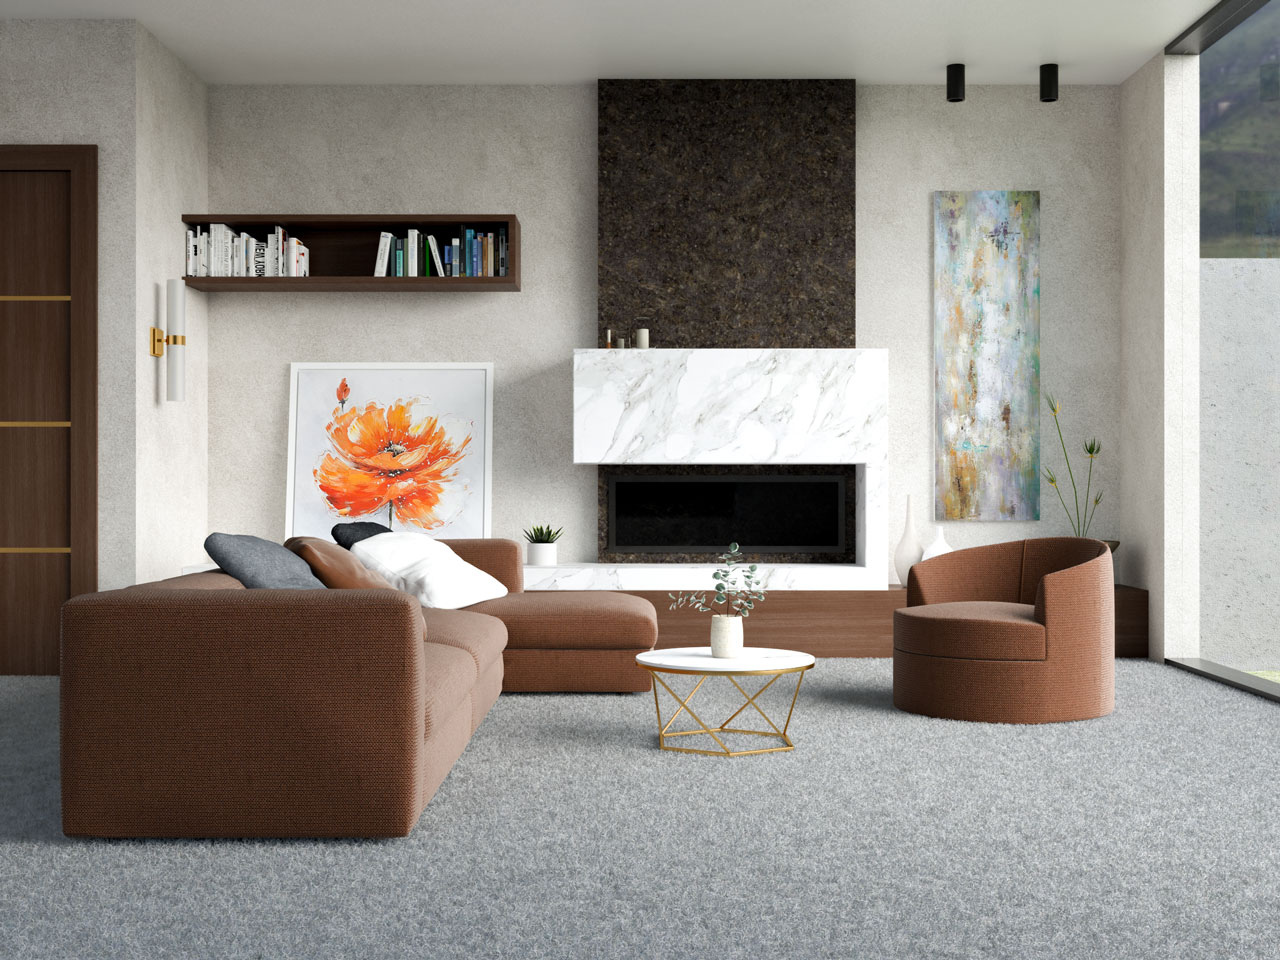 Light gray carpet with chocolate brown furniture